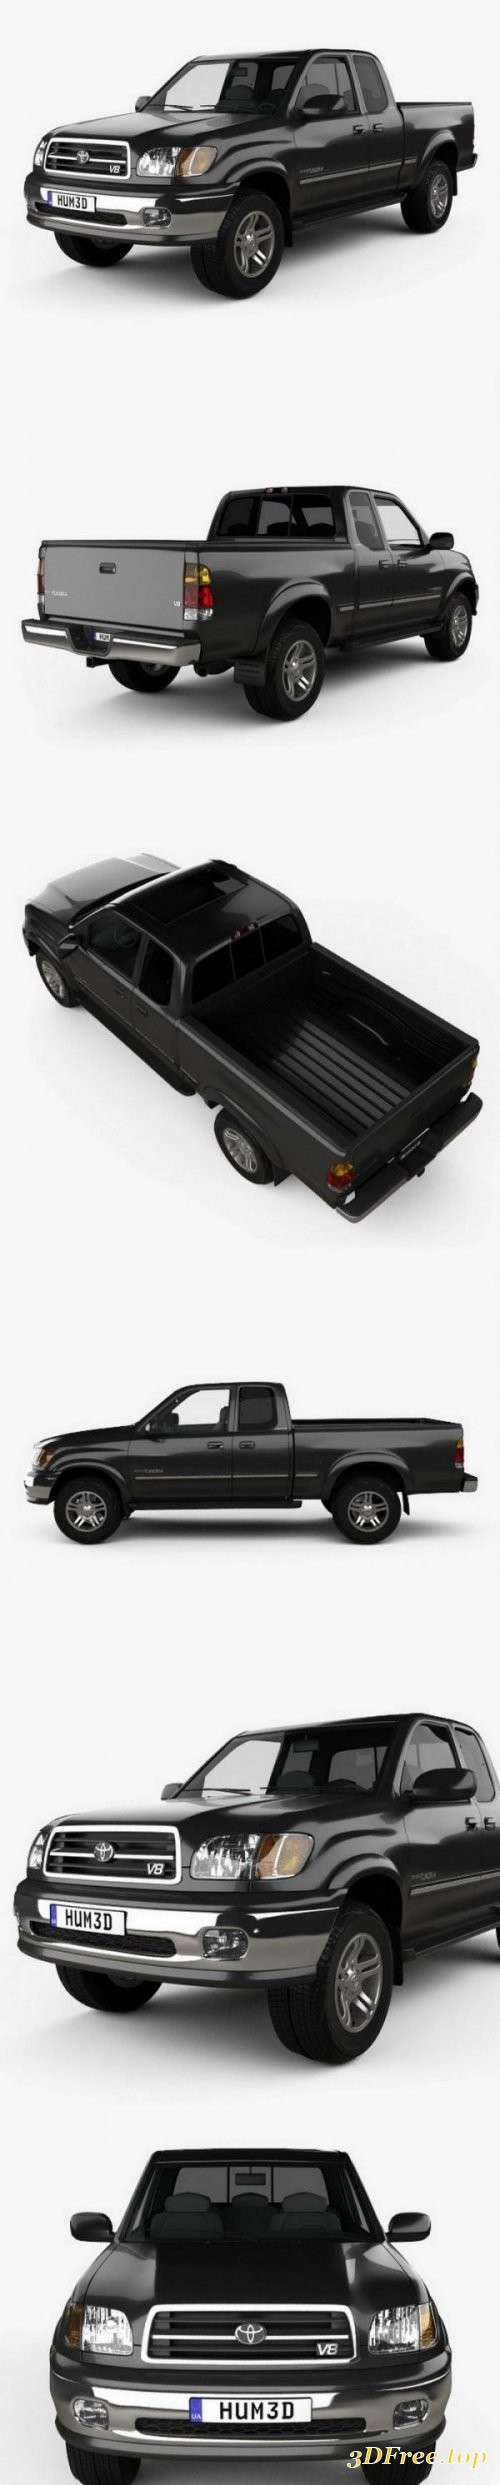 Toyota Tundra Access Cab SR5 1999 3D model